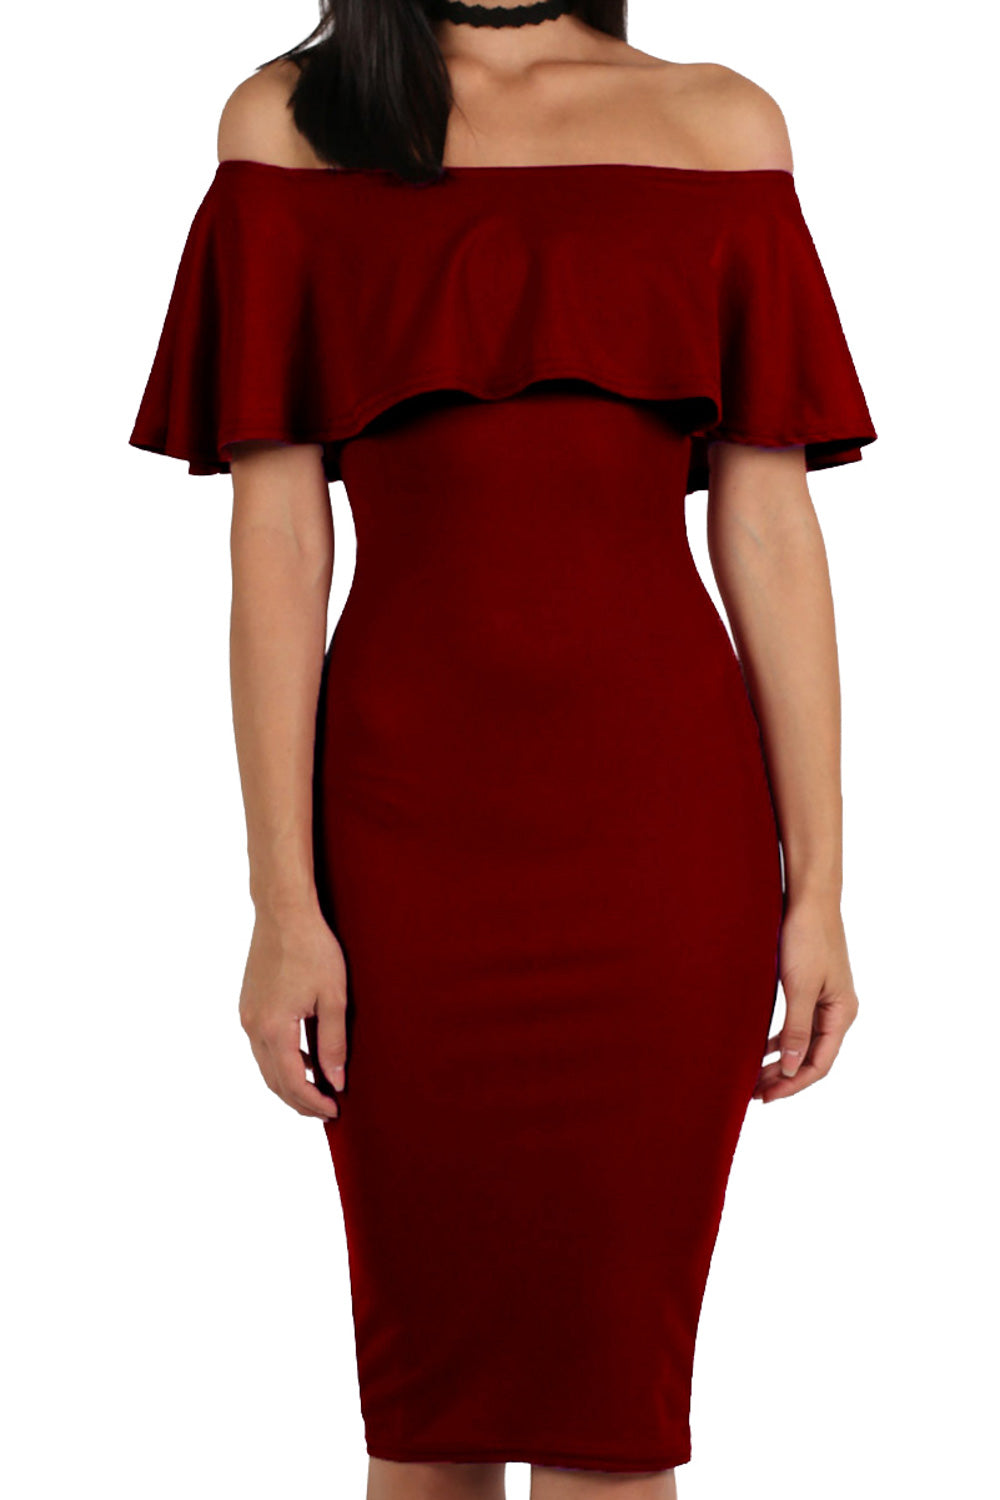 Off Shoulder Deep Frill Bodycon Midi Dress in Burgundy Red